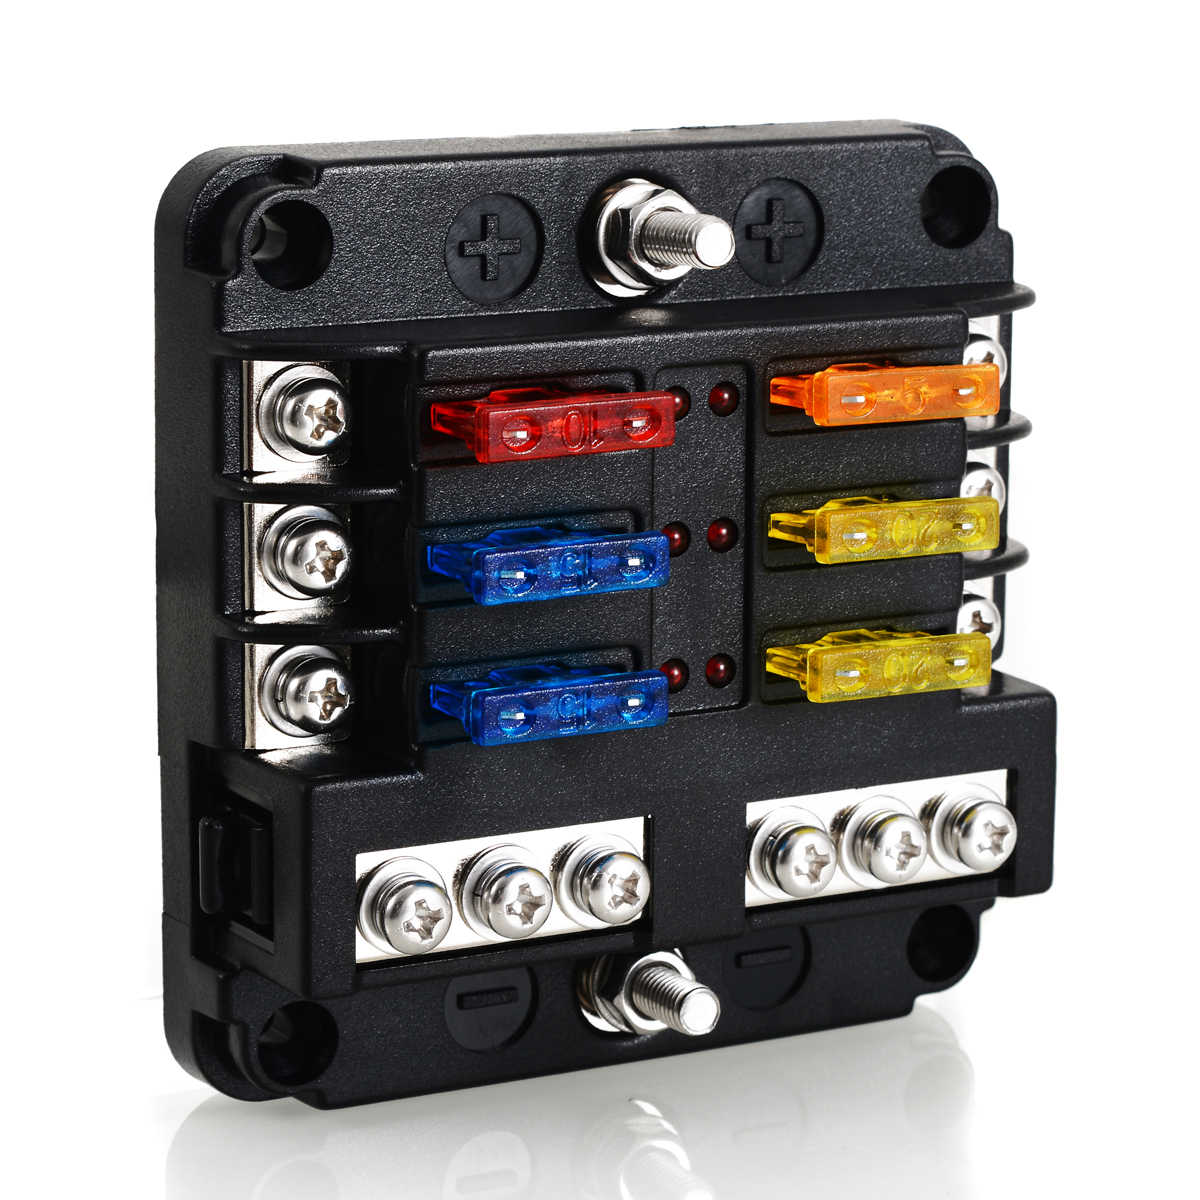 [SCHEMATICS_48DE]  Electrical Blade Fuse Holder Box 6 Way Blade Fuse Block Case 12V/24V Car  Truck Marine Bus RV Van 5A 10A 15A 20A Fuses| | - AliExpress | Truck Fuse Box |  | AliExpress